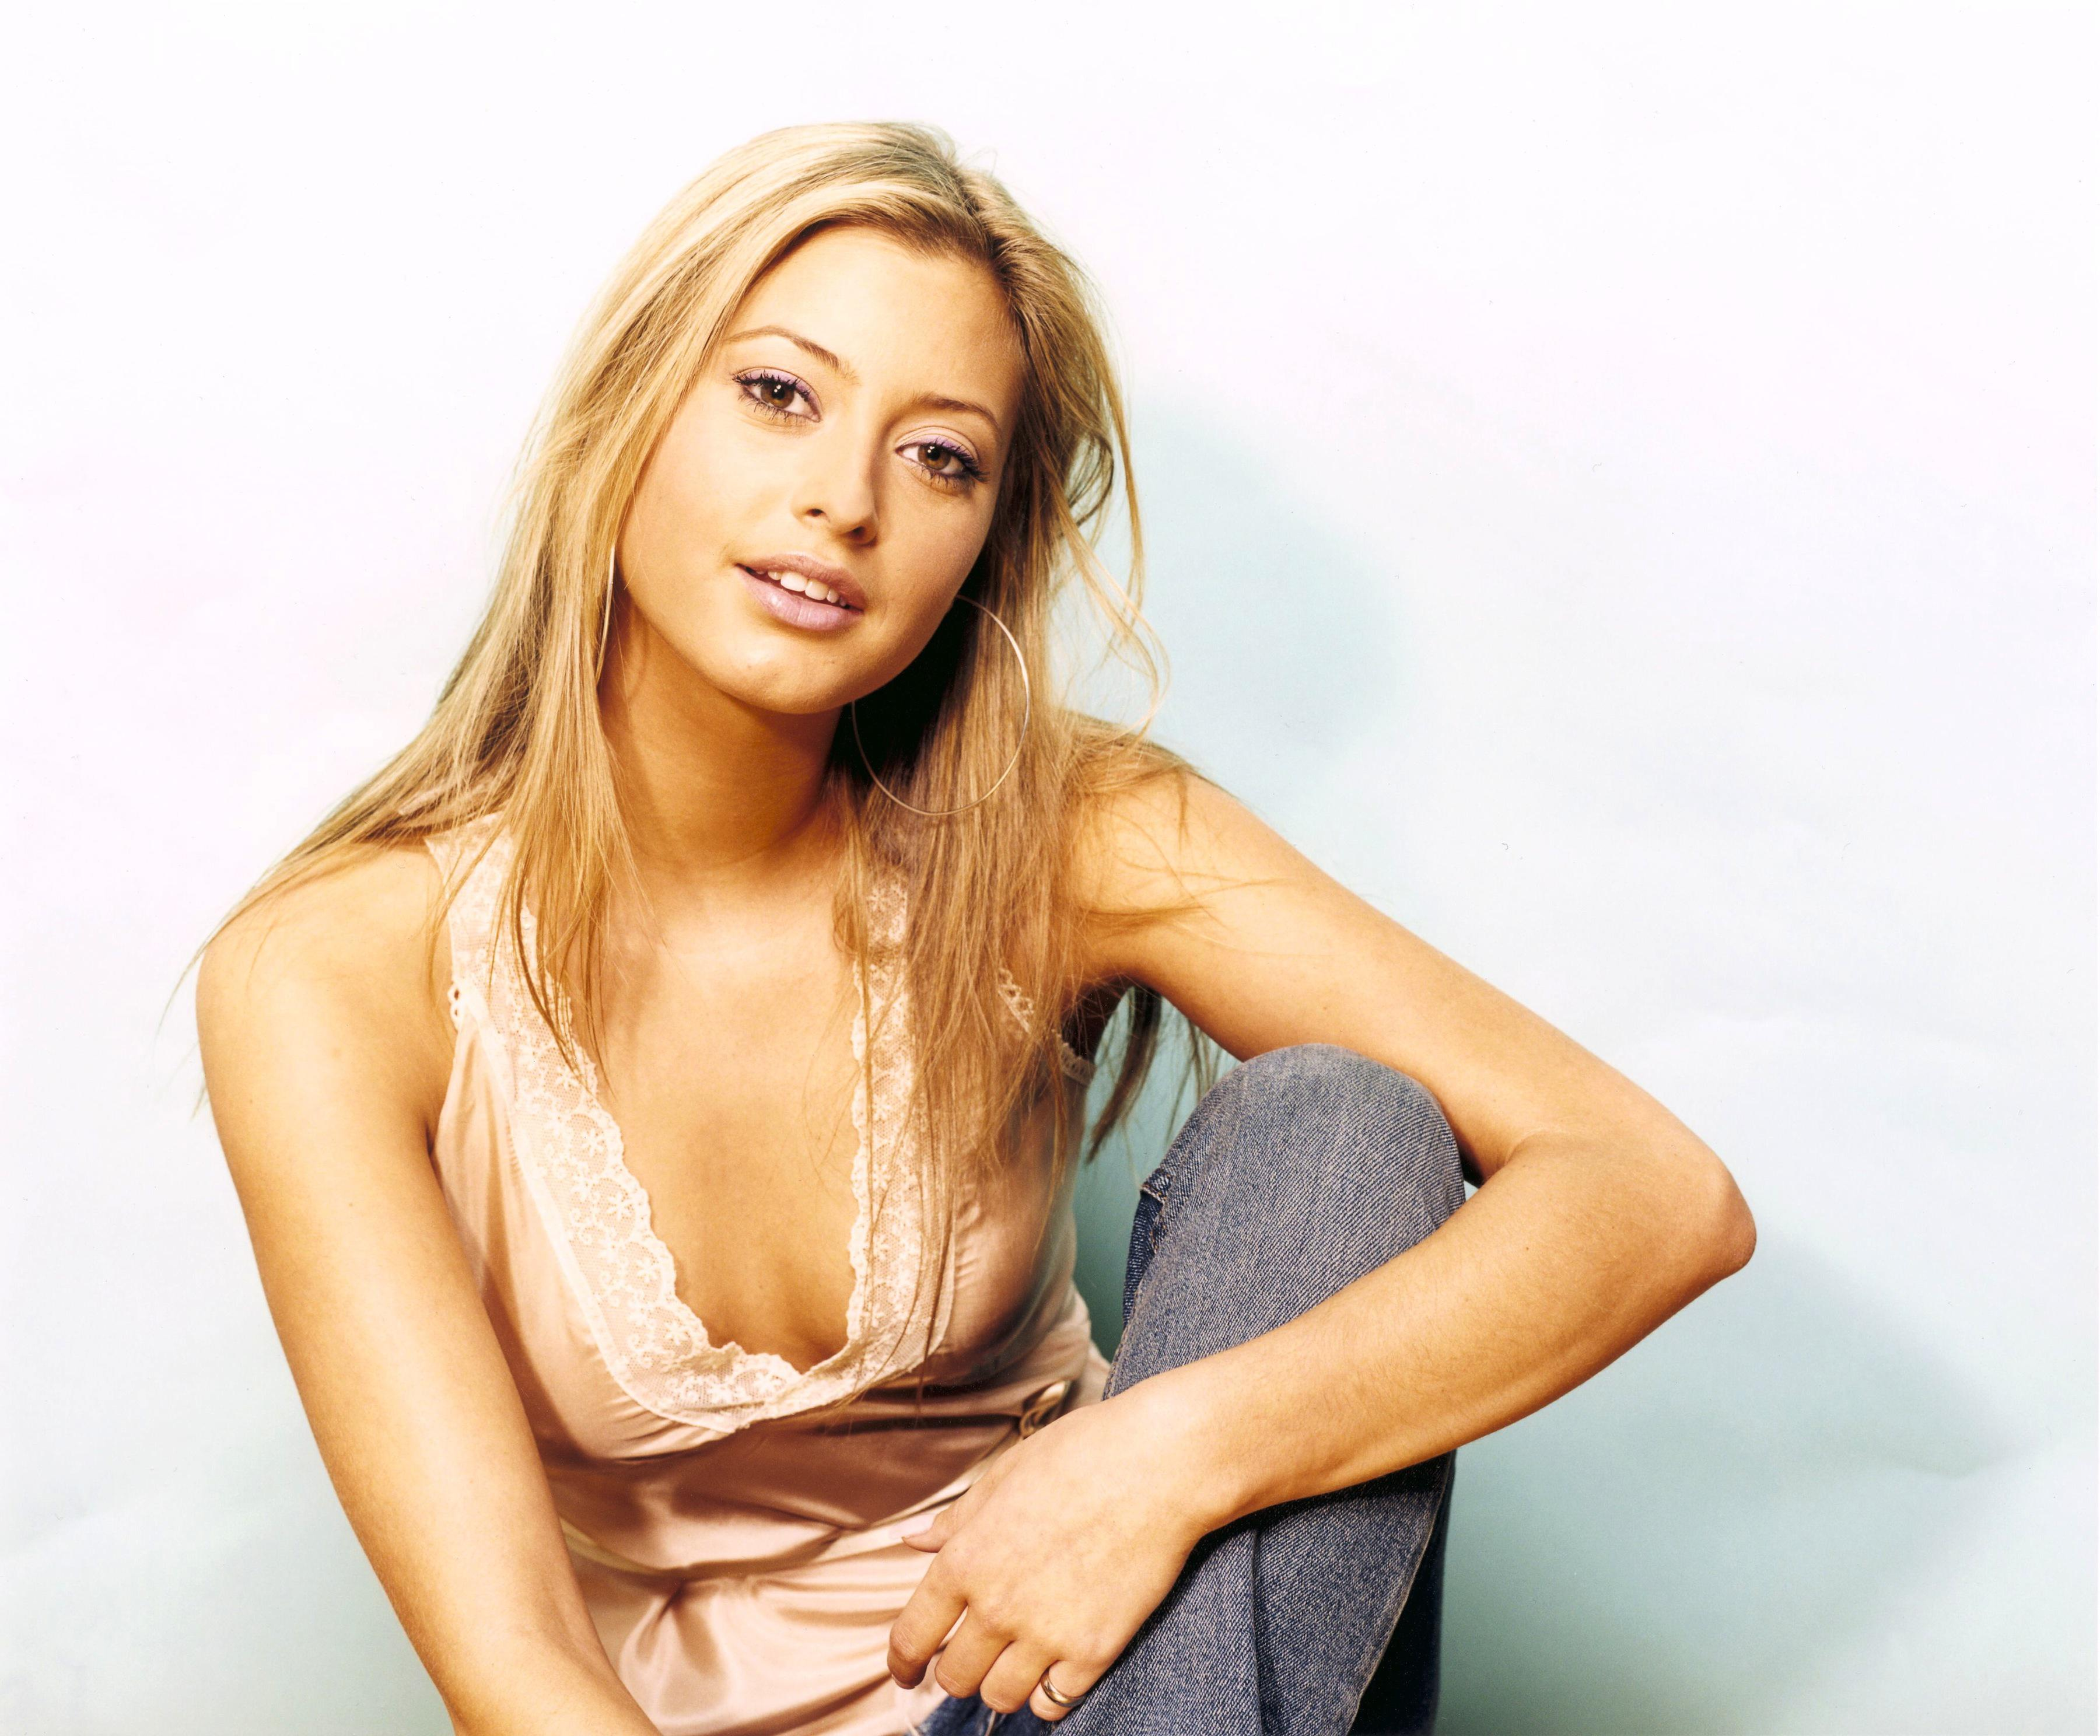 Hot nude wallpaper of holly valance